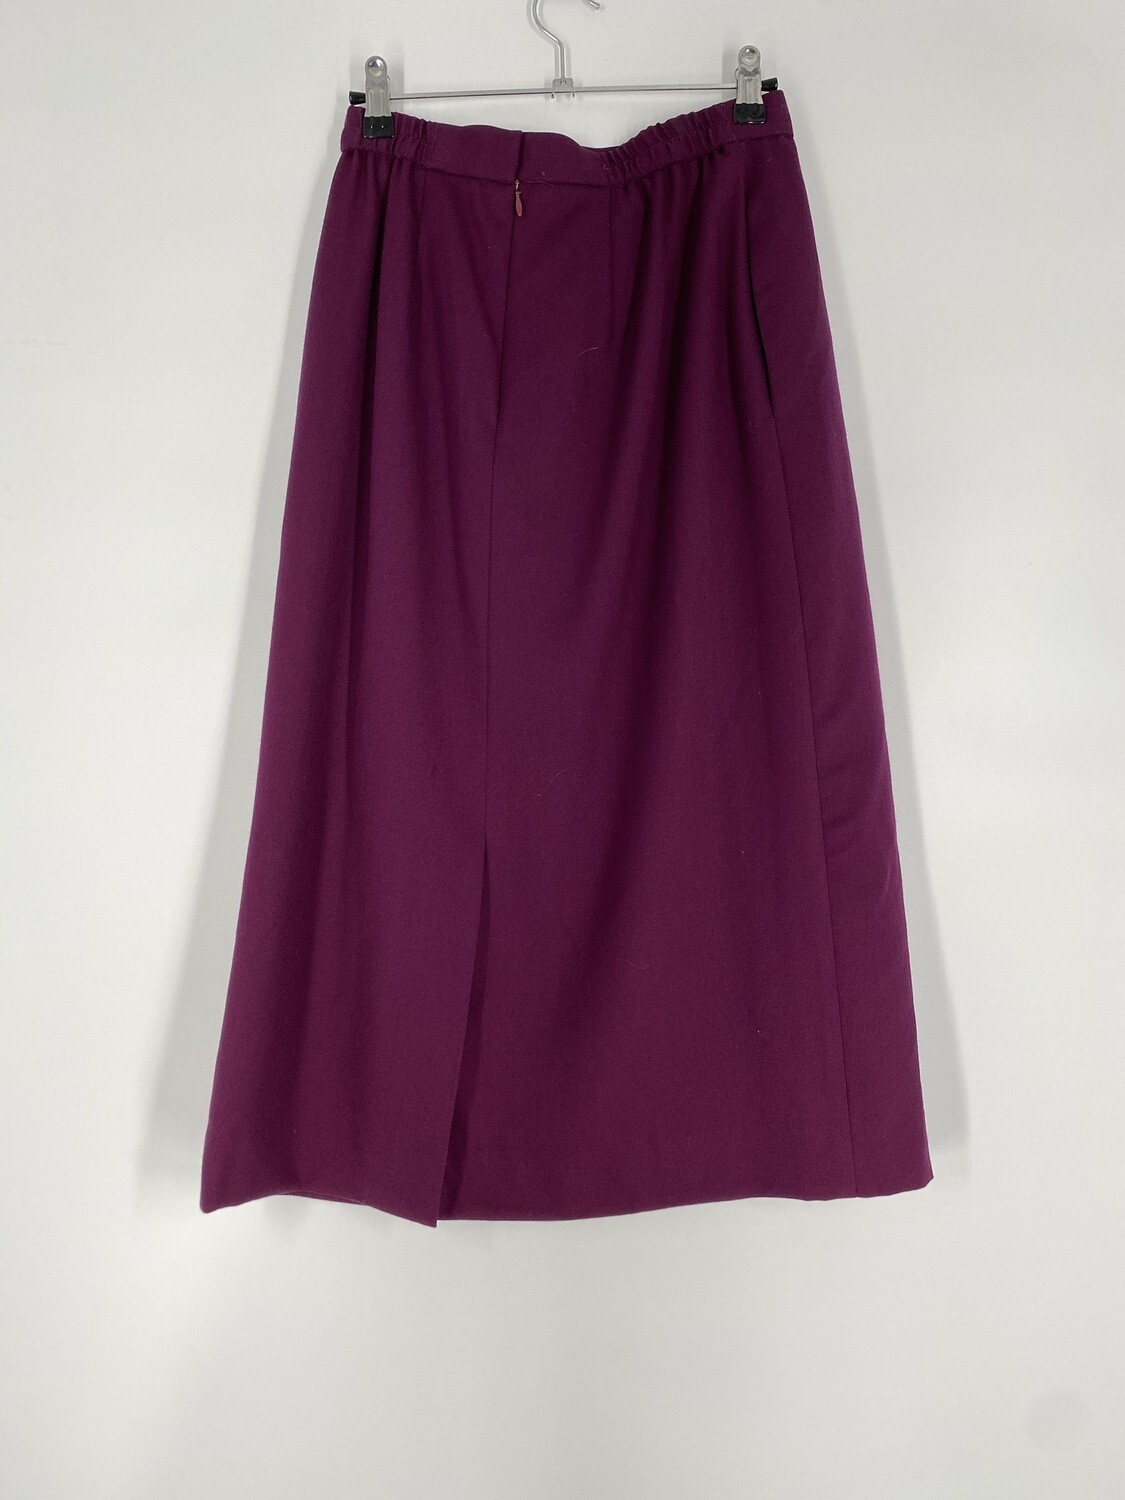 David Brooks Burgundy Skirt Size S